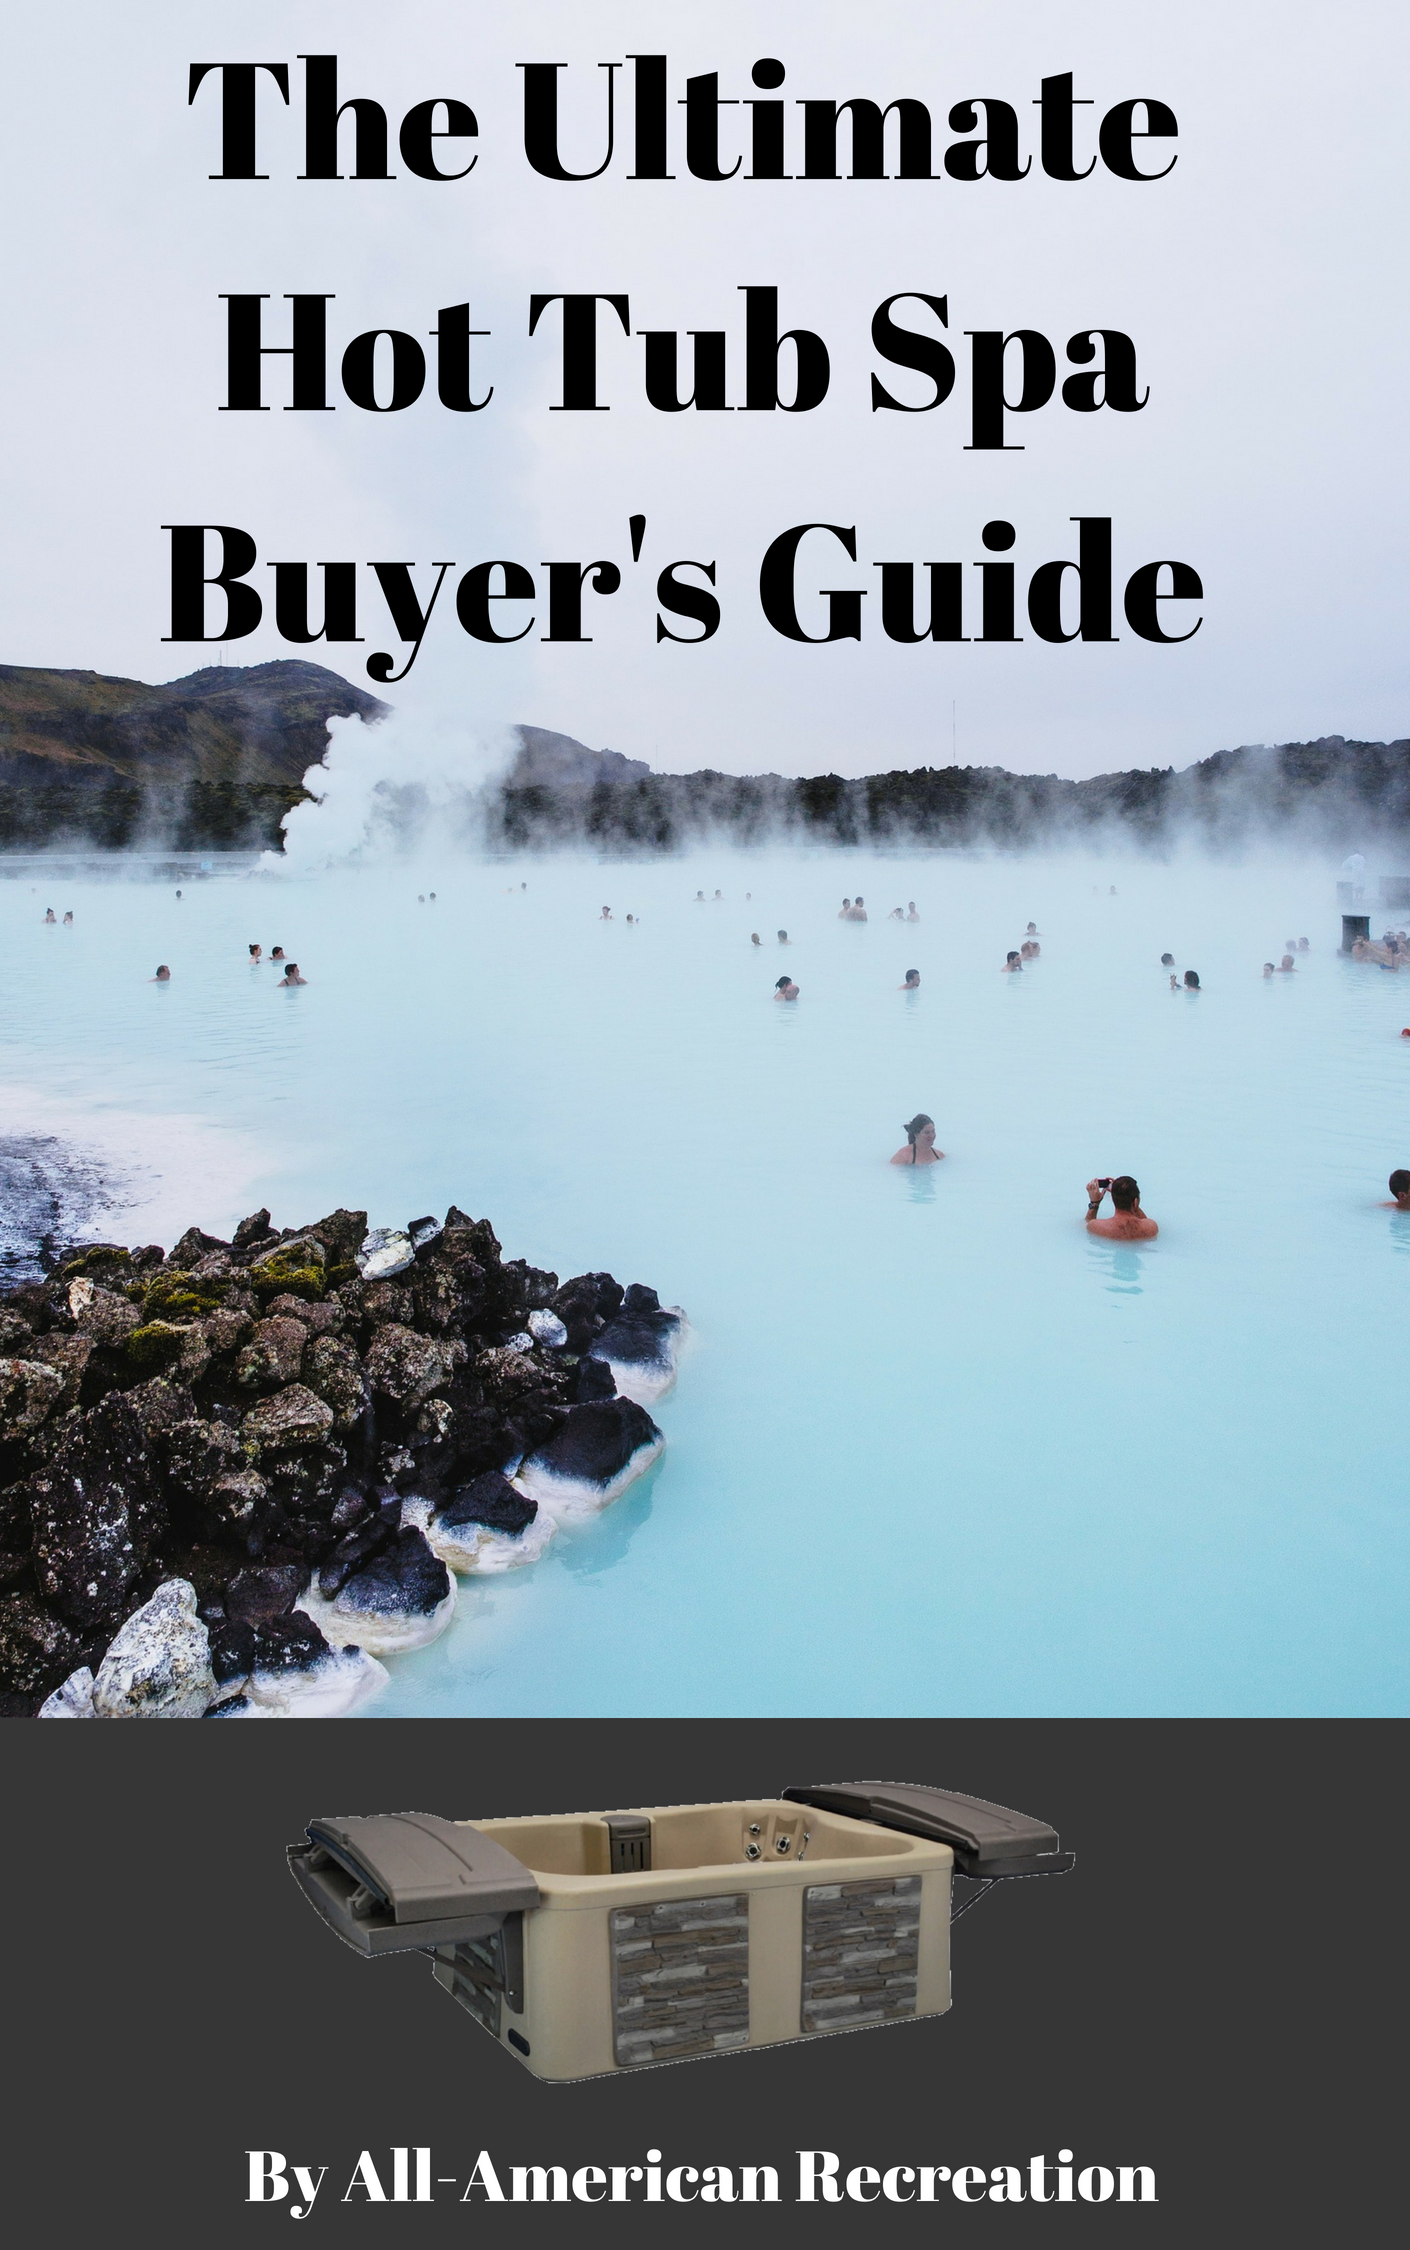 The Ultimate Hot Tub Spa Buyer's Guide